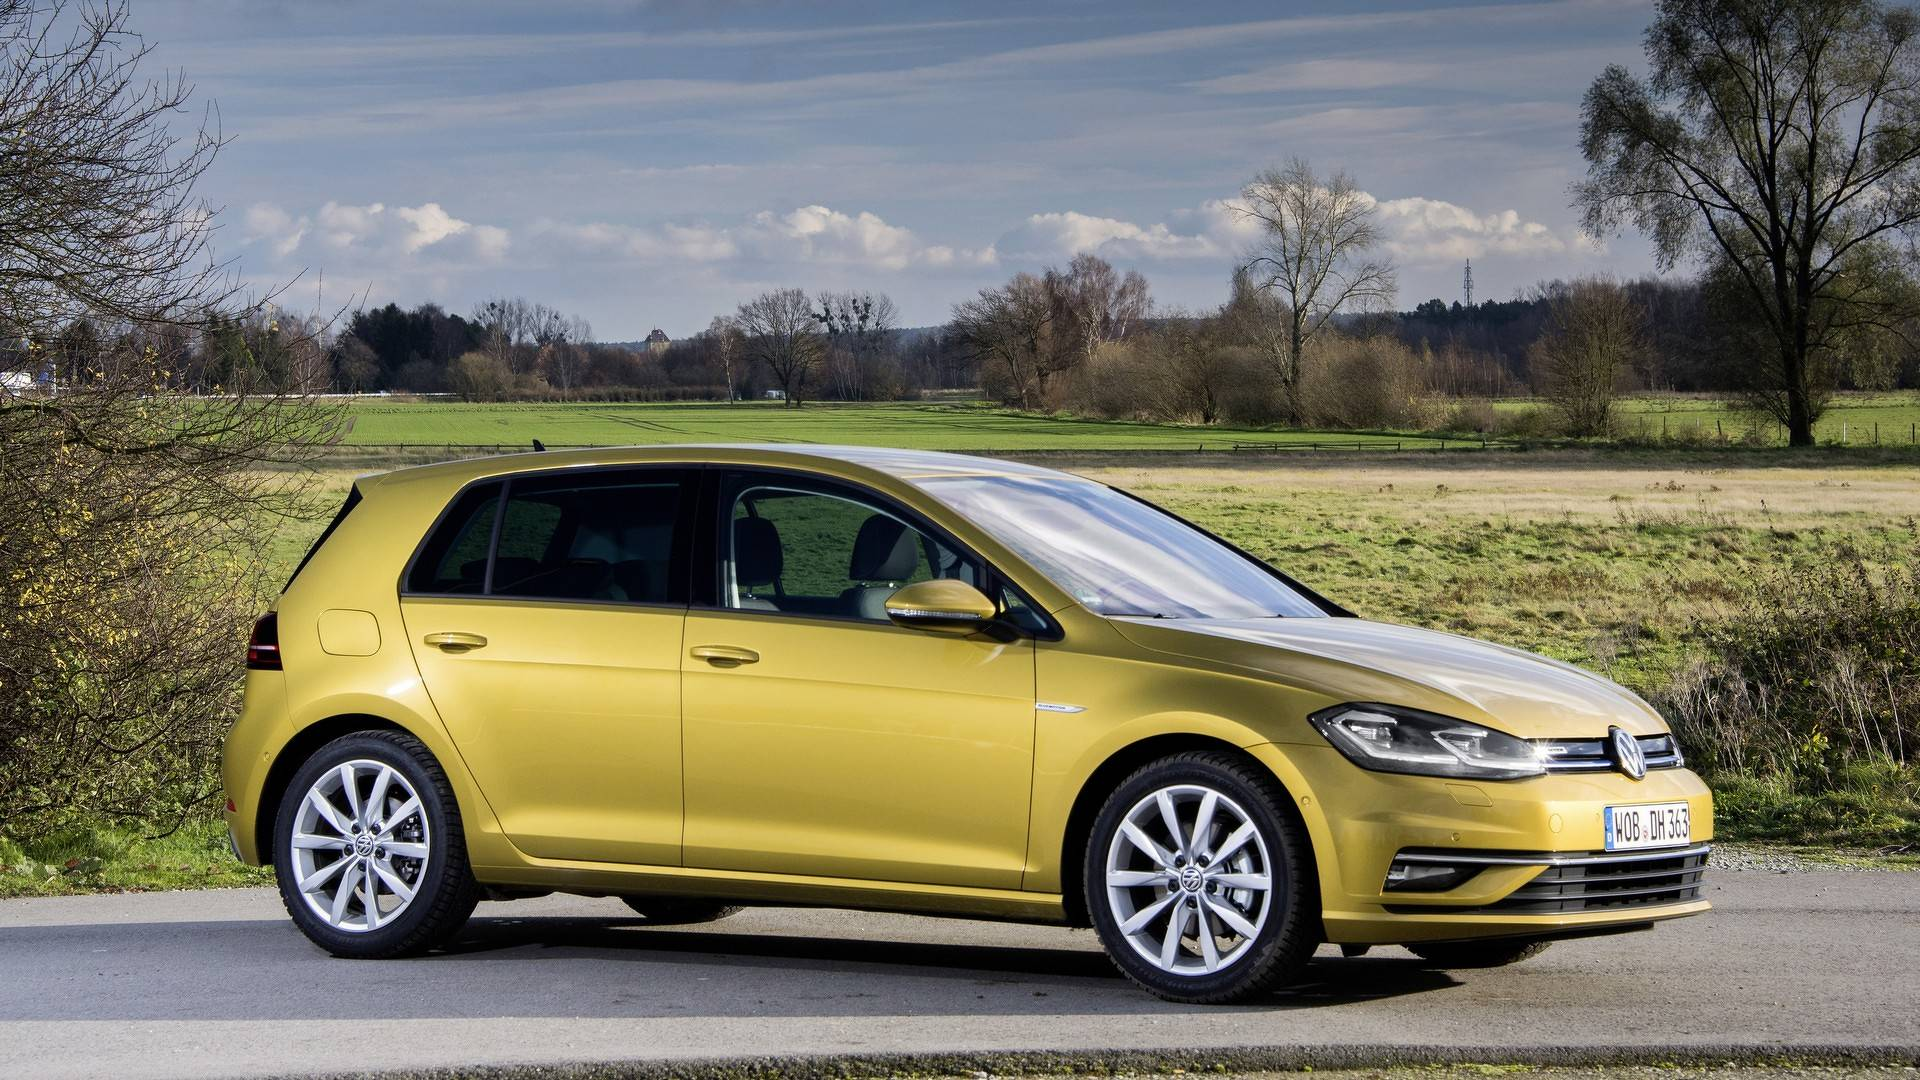 VW Claims Golf 1 5 TSI ACT BlueMotion Delivers Diesel-Like Economy